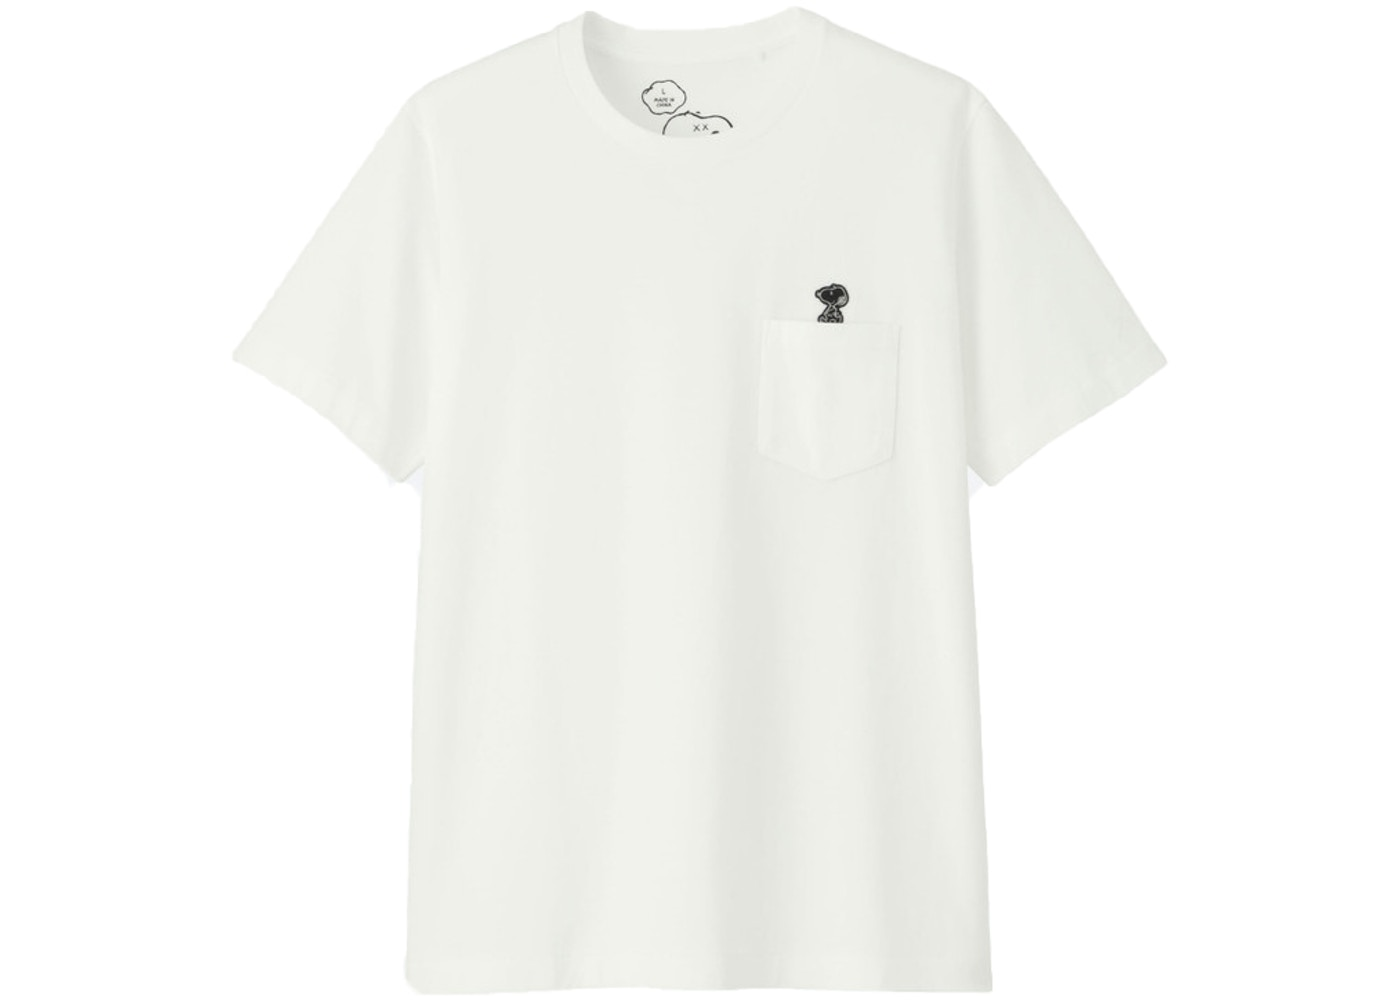 861b719a KAWS x Uniqlo x Peanuts Snoopy Pocket Tee (US Sizing) (FW17) White ...